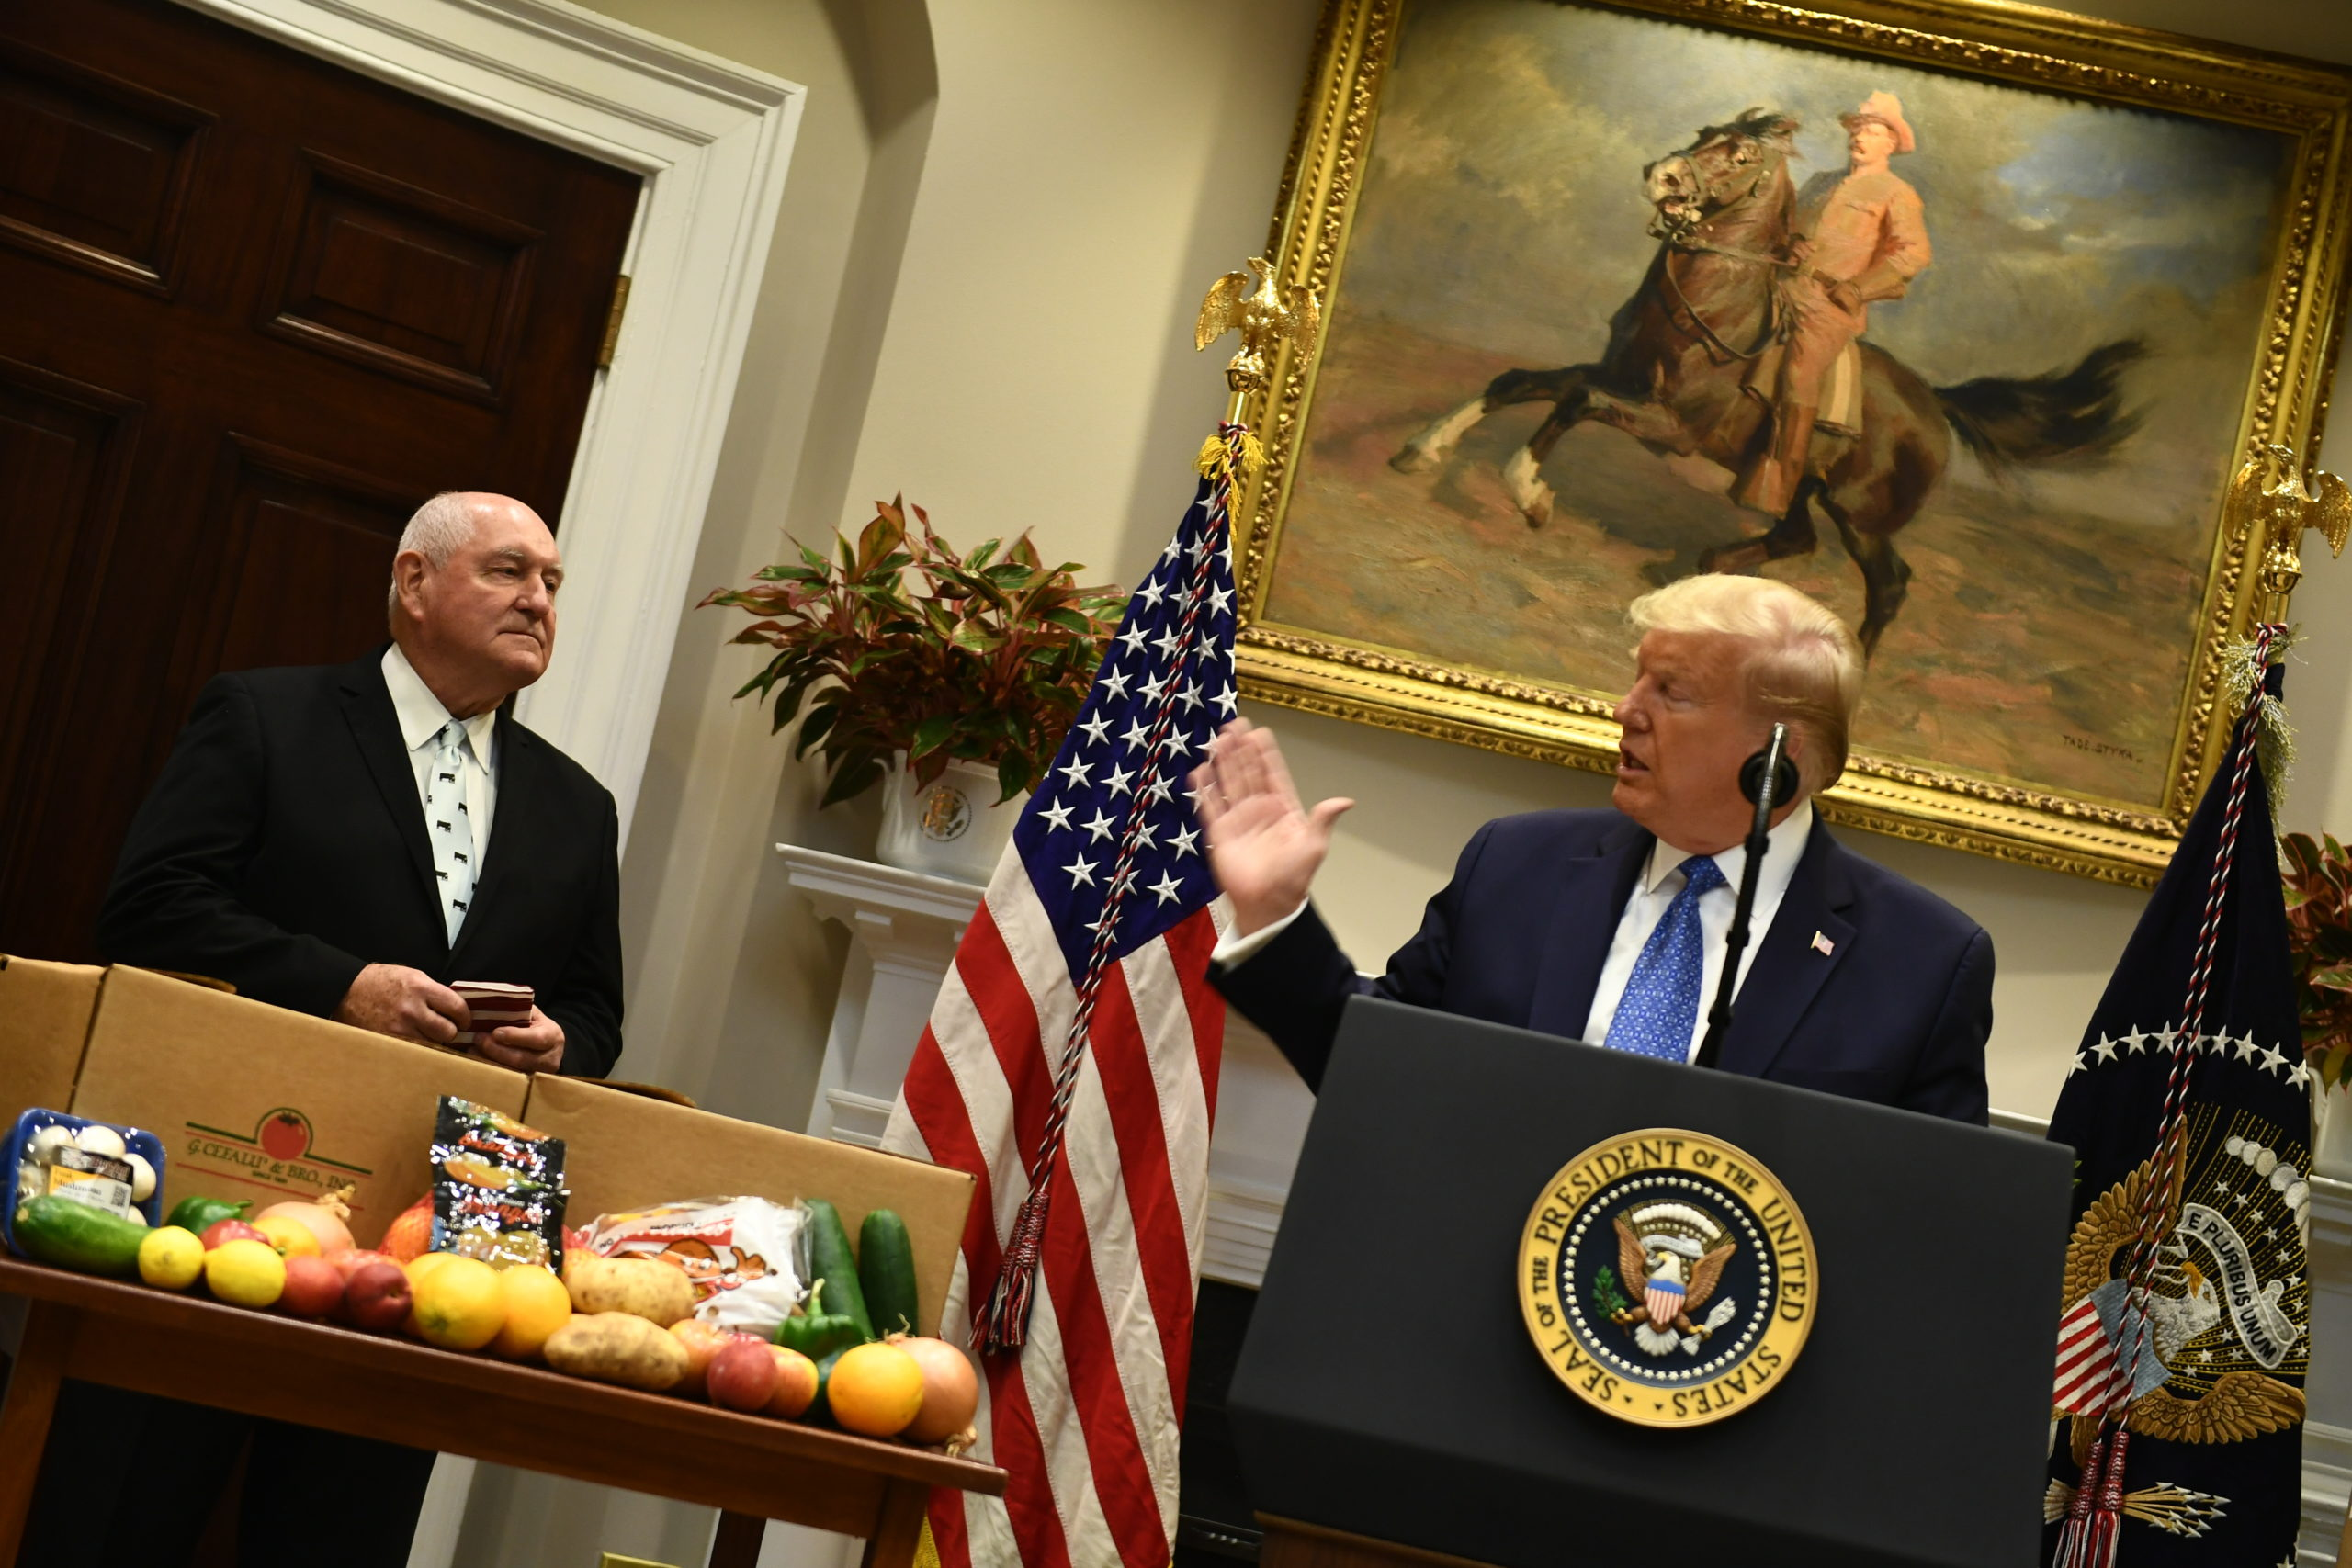 President Donald Trump, with Agriculture Sec. Sonny Perdue, speaks about the food supply chain during the coronavirus pandemic, in the Roosevelt Room of the White House on May 19. (Brendan Smialowski/AFP via Getty Images)